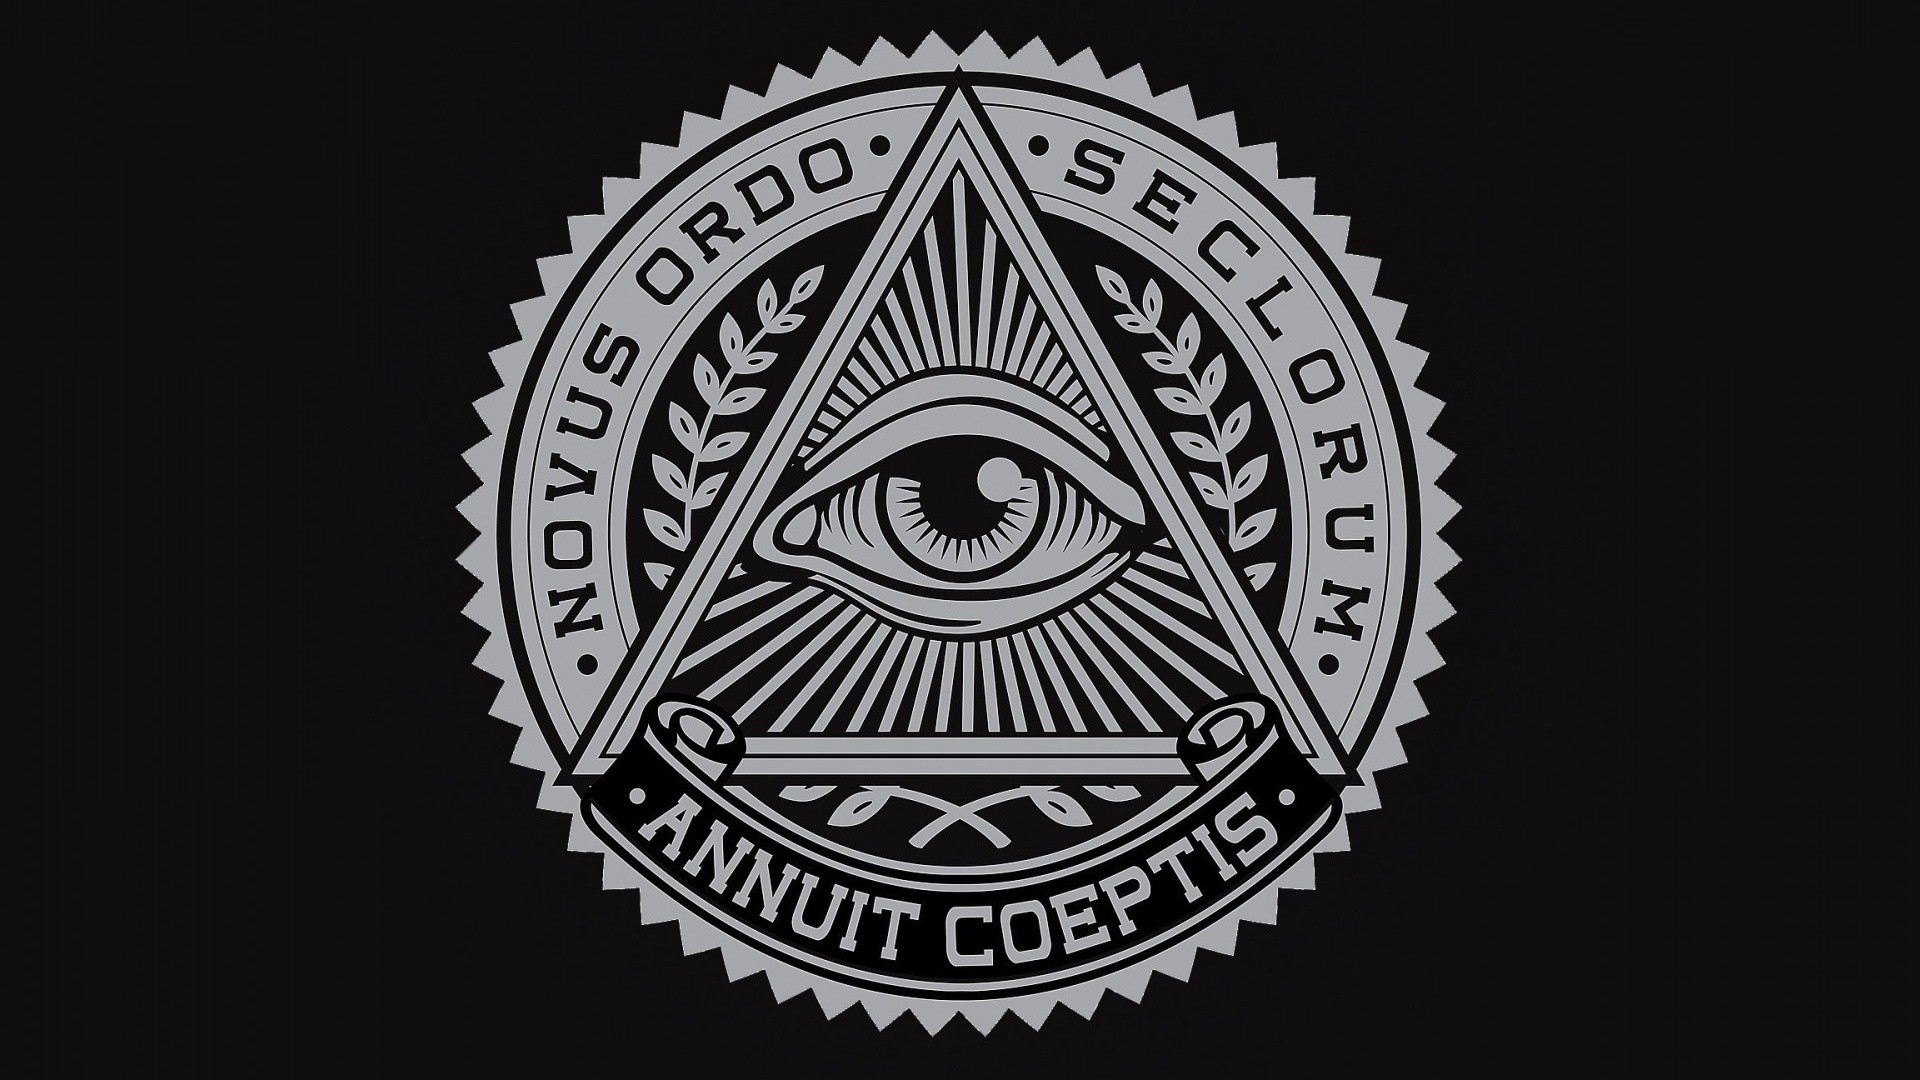 illuminati The not so eagerly anticipated sequel to the sucky 2013 movie of the same name the purge: anarchy, is set for release later this month and if the trailer is anything to go by it will predictably centre around some familiar illuminati industry themes intended to subconsciously manipulate the minds of the viewing masses into [.